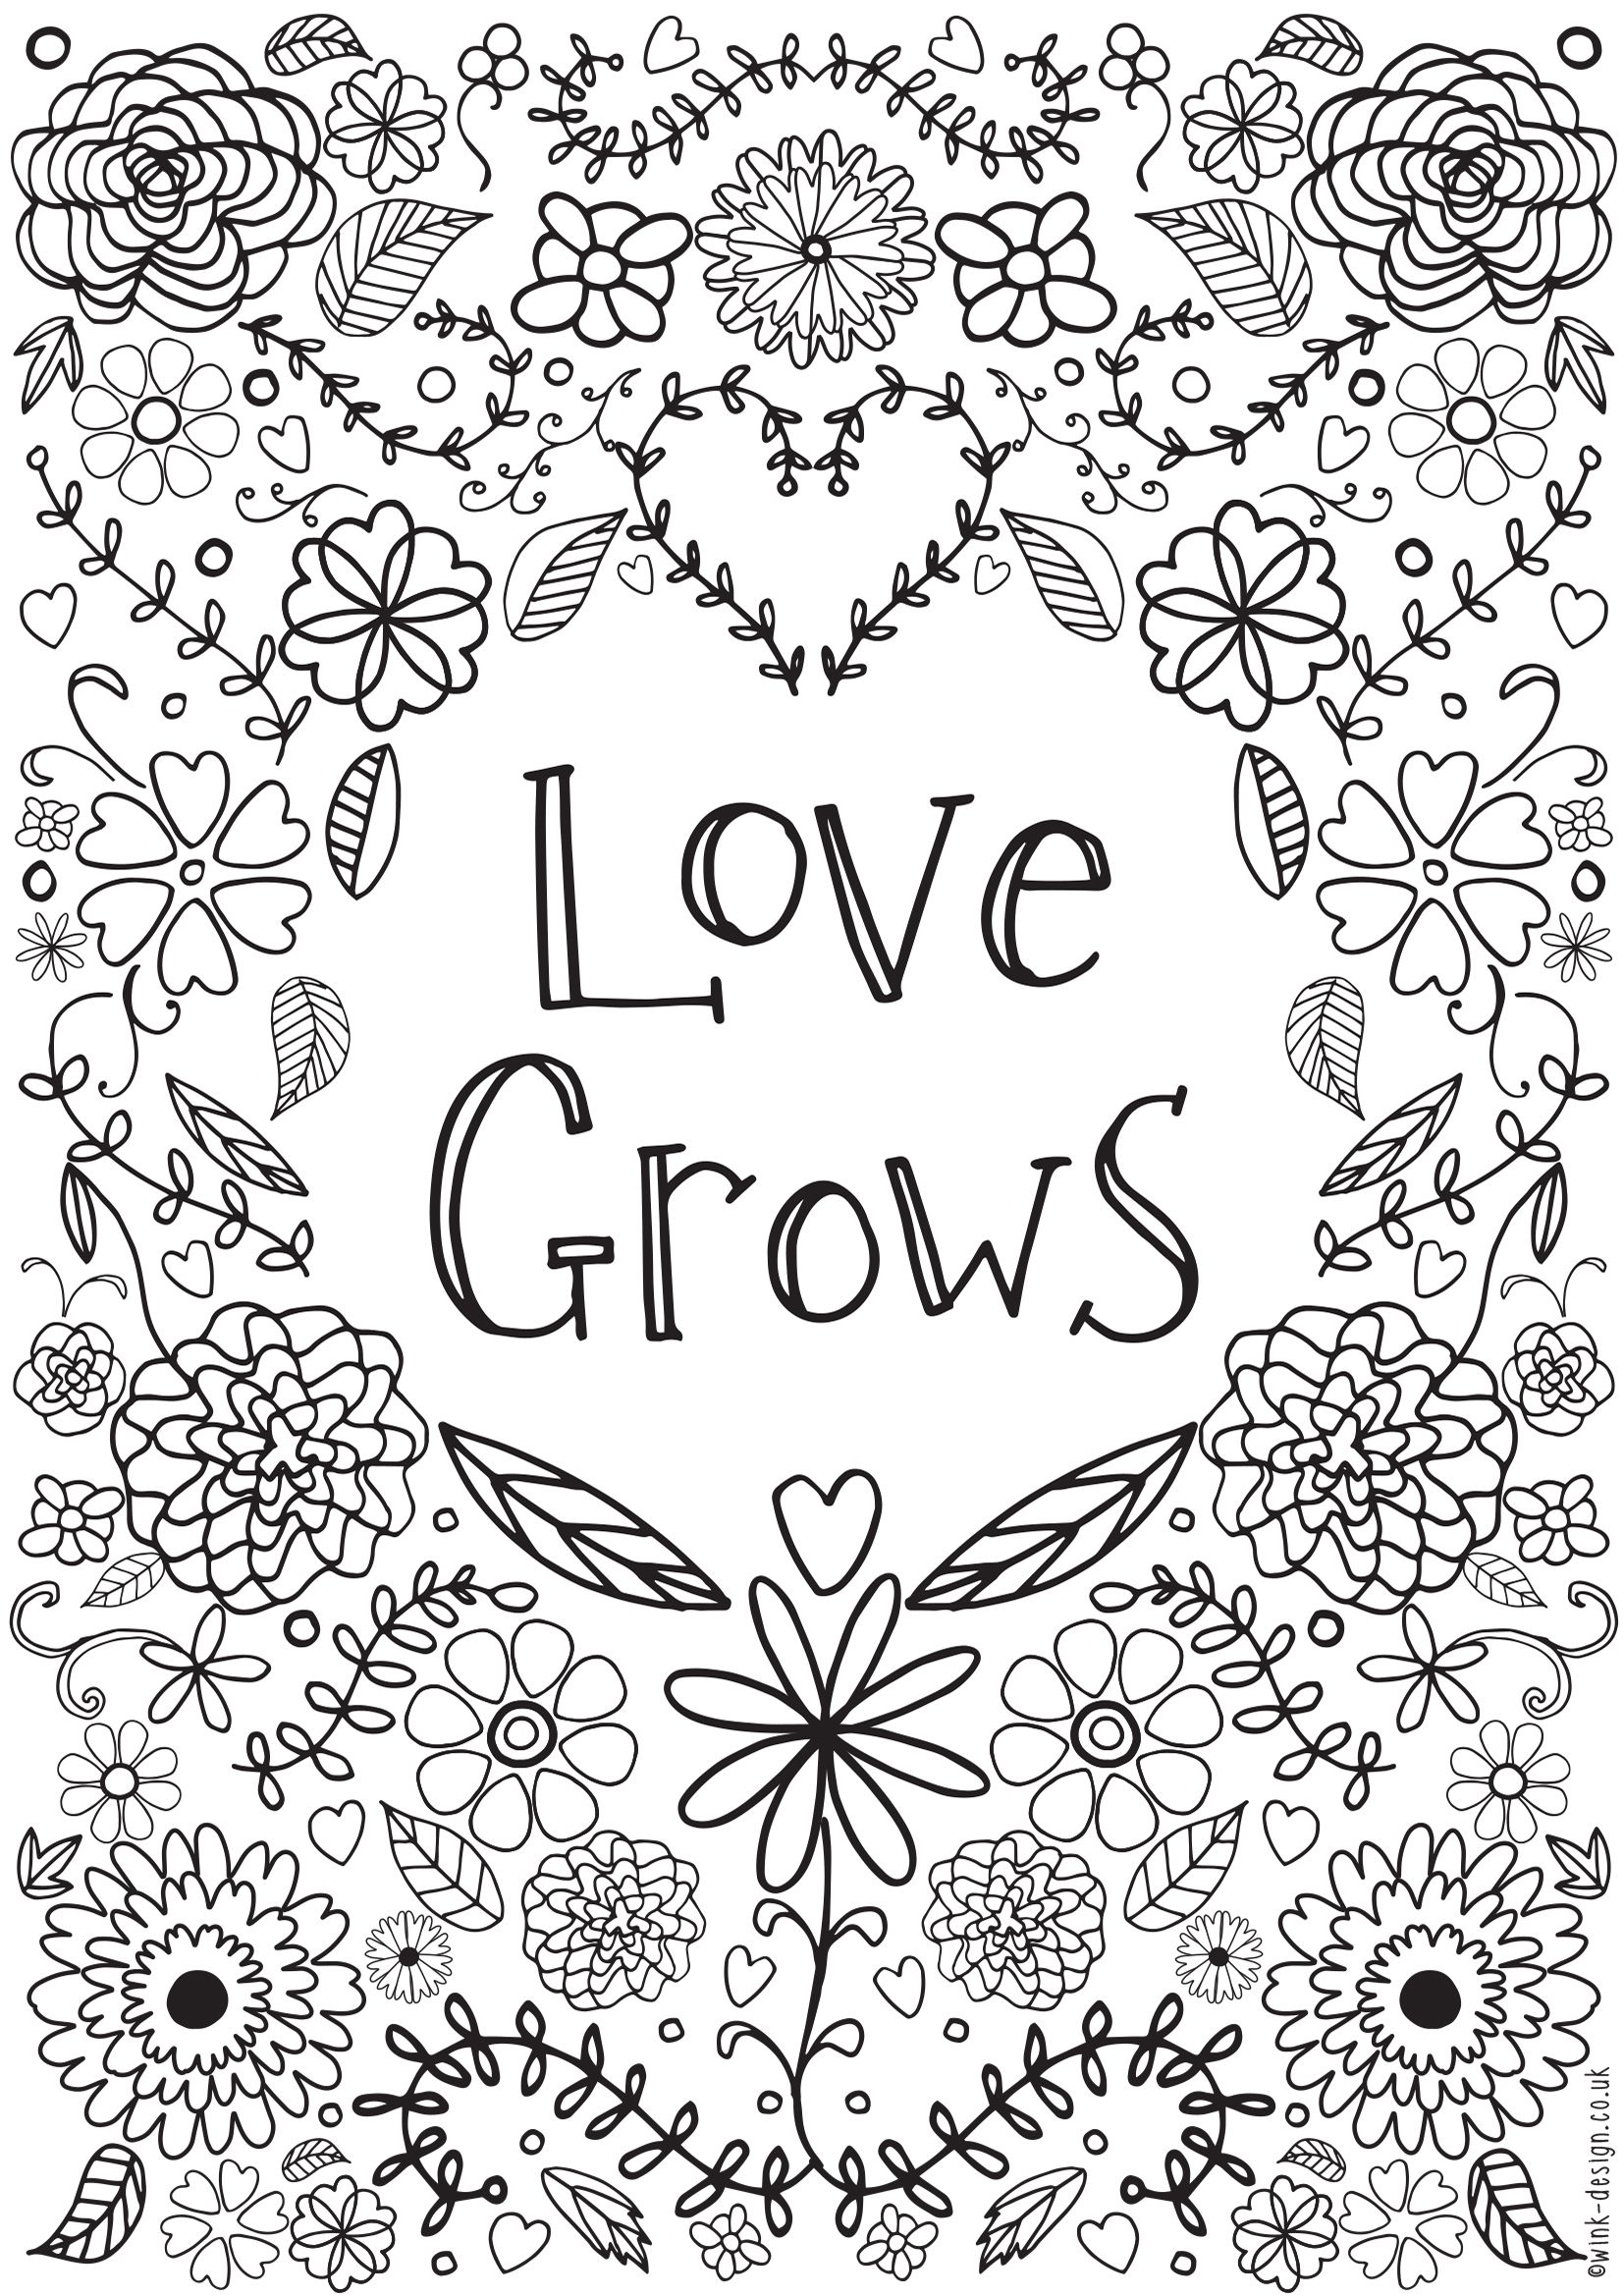 Quotes coloring pages to print - Free Printable Adult Colouring Sheet With Inspirational Quote